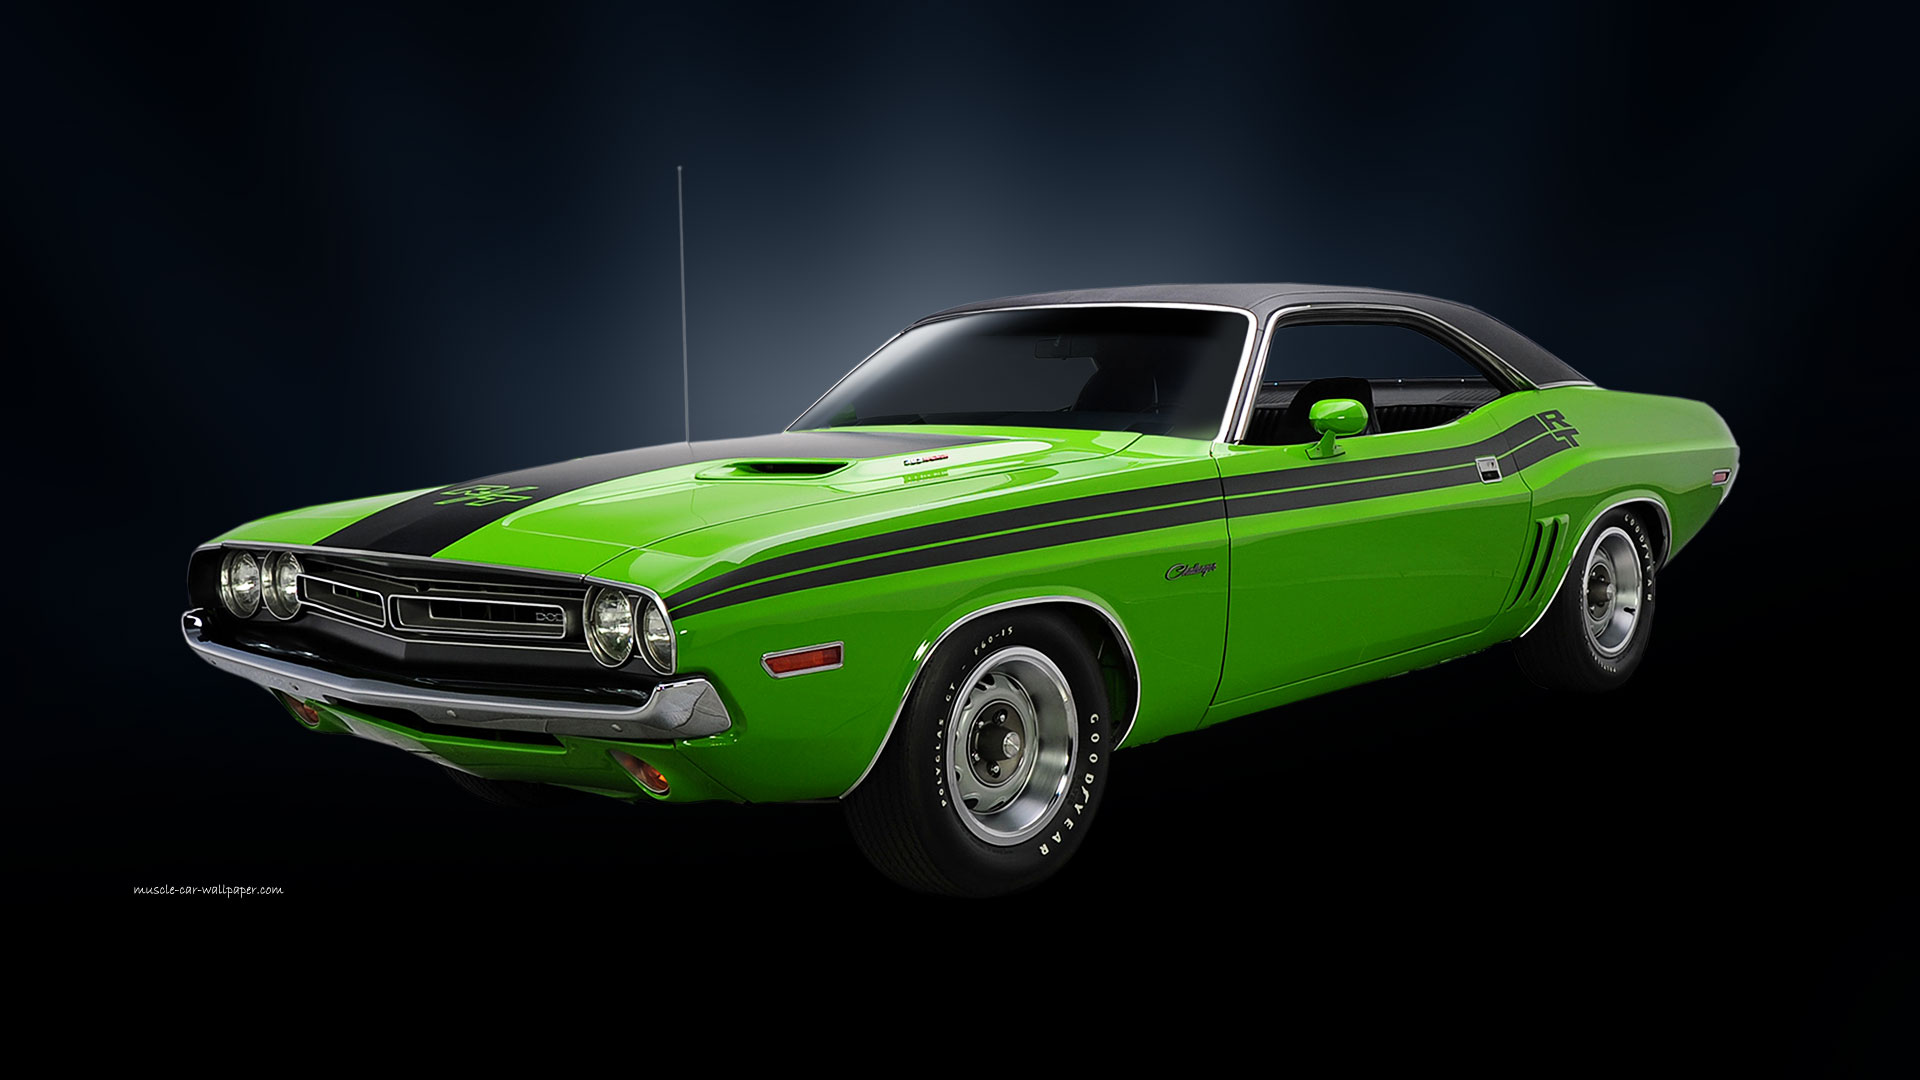 Muscle Cars Dodge Challenger Rt Mopar High Wallpaper With 1920x1080 1920x1080